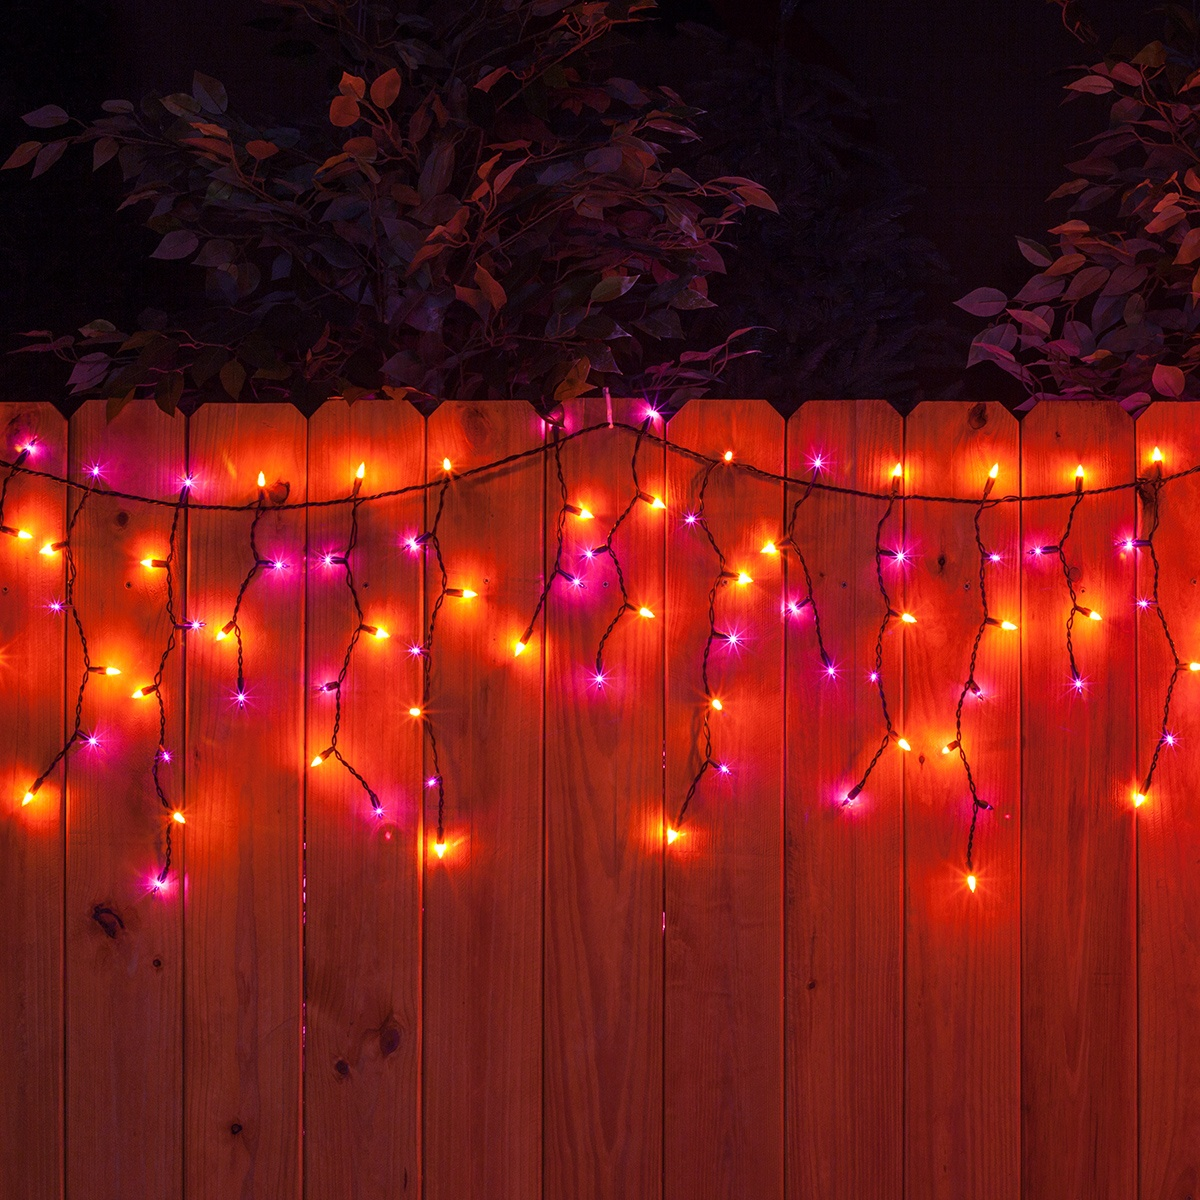 150 Halloween Icicle Lights Purple Orange Black Wire